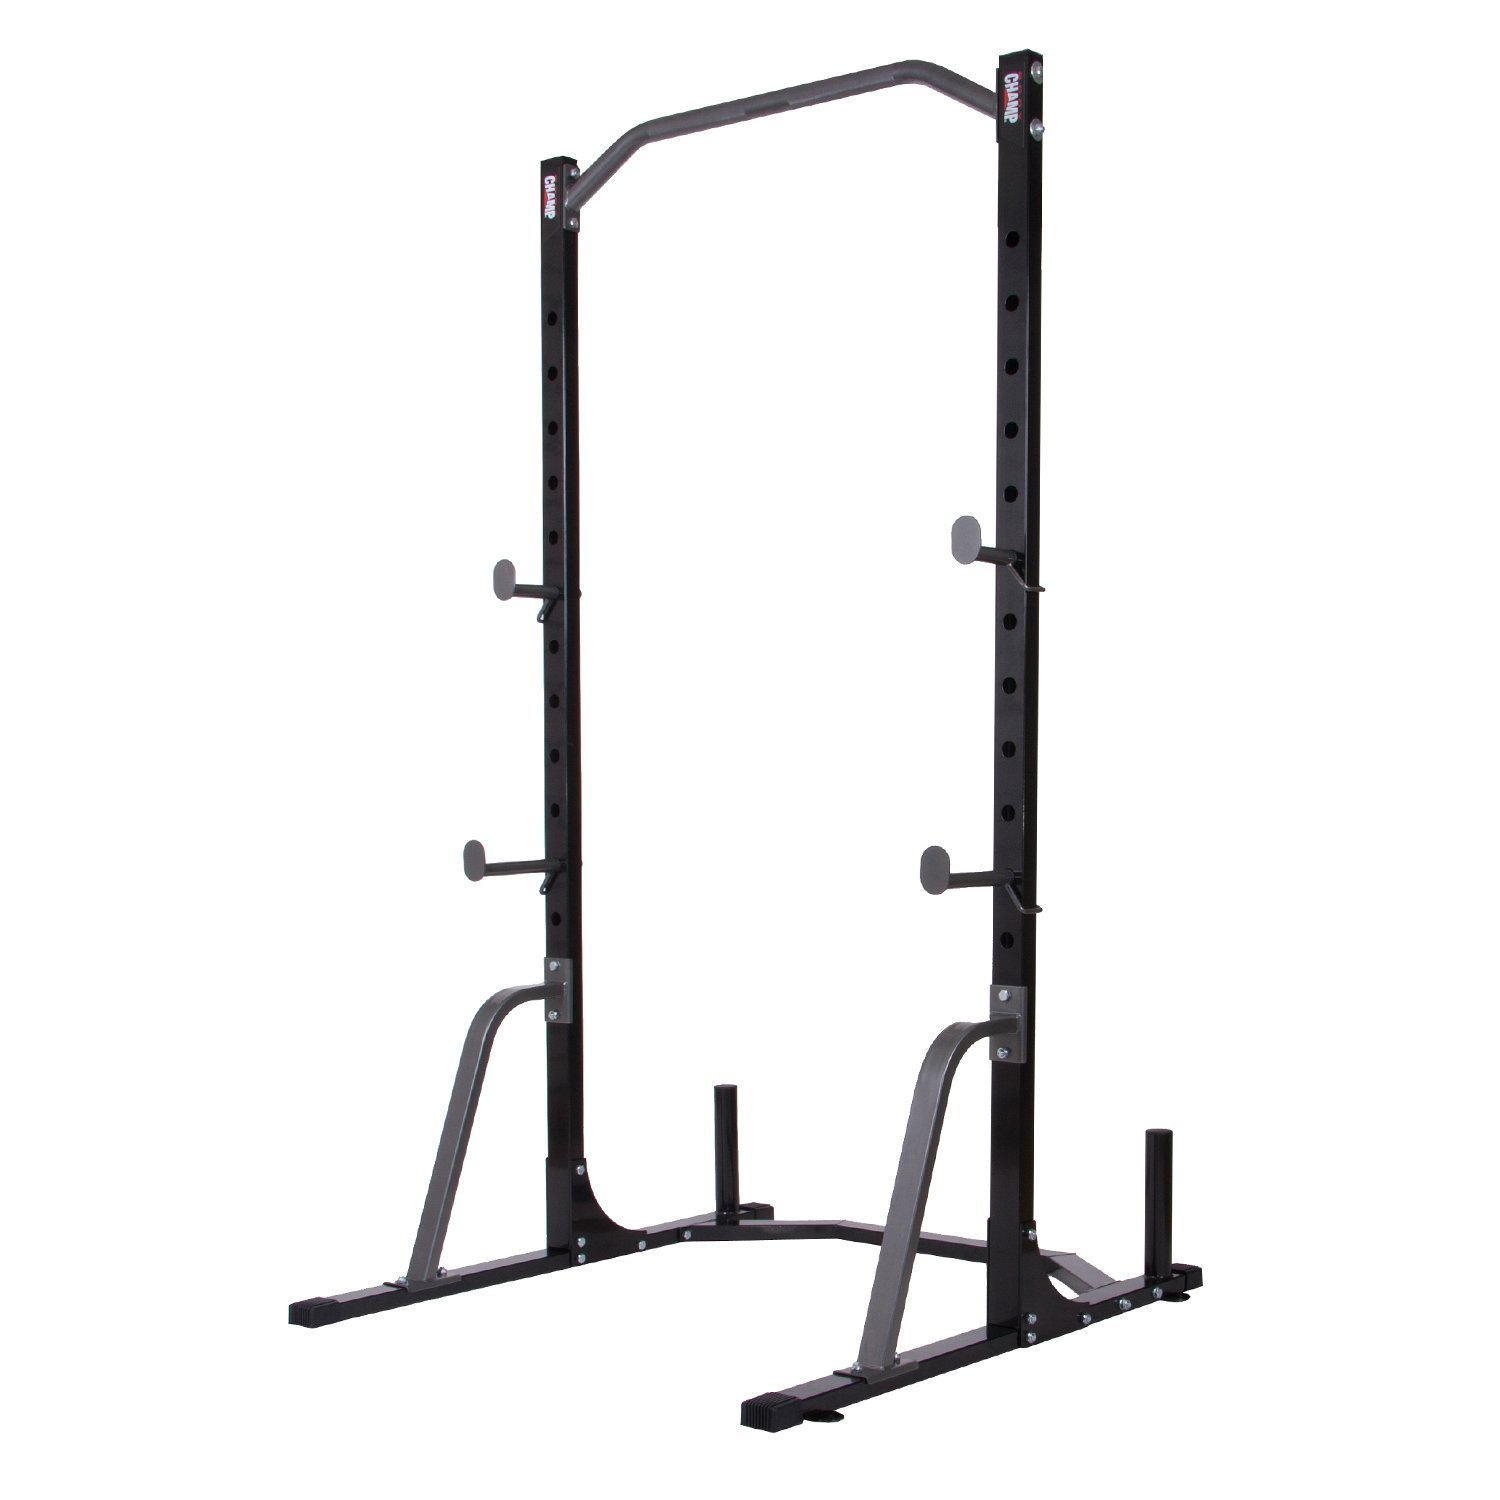 Beautiful Body Champ PBC530 Power Rack System With Olympic Weight Plate Storage